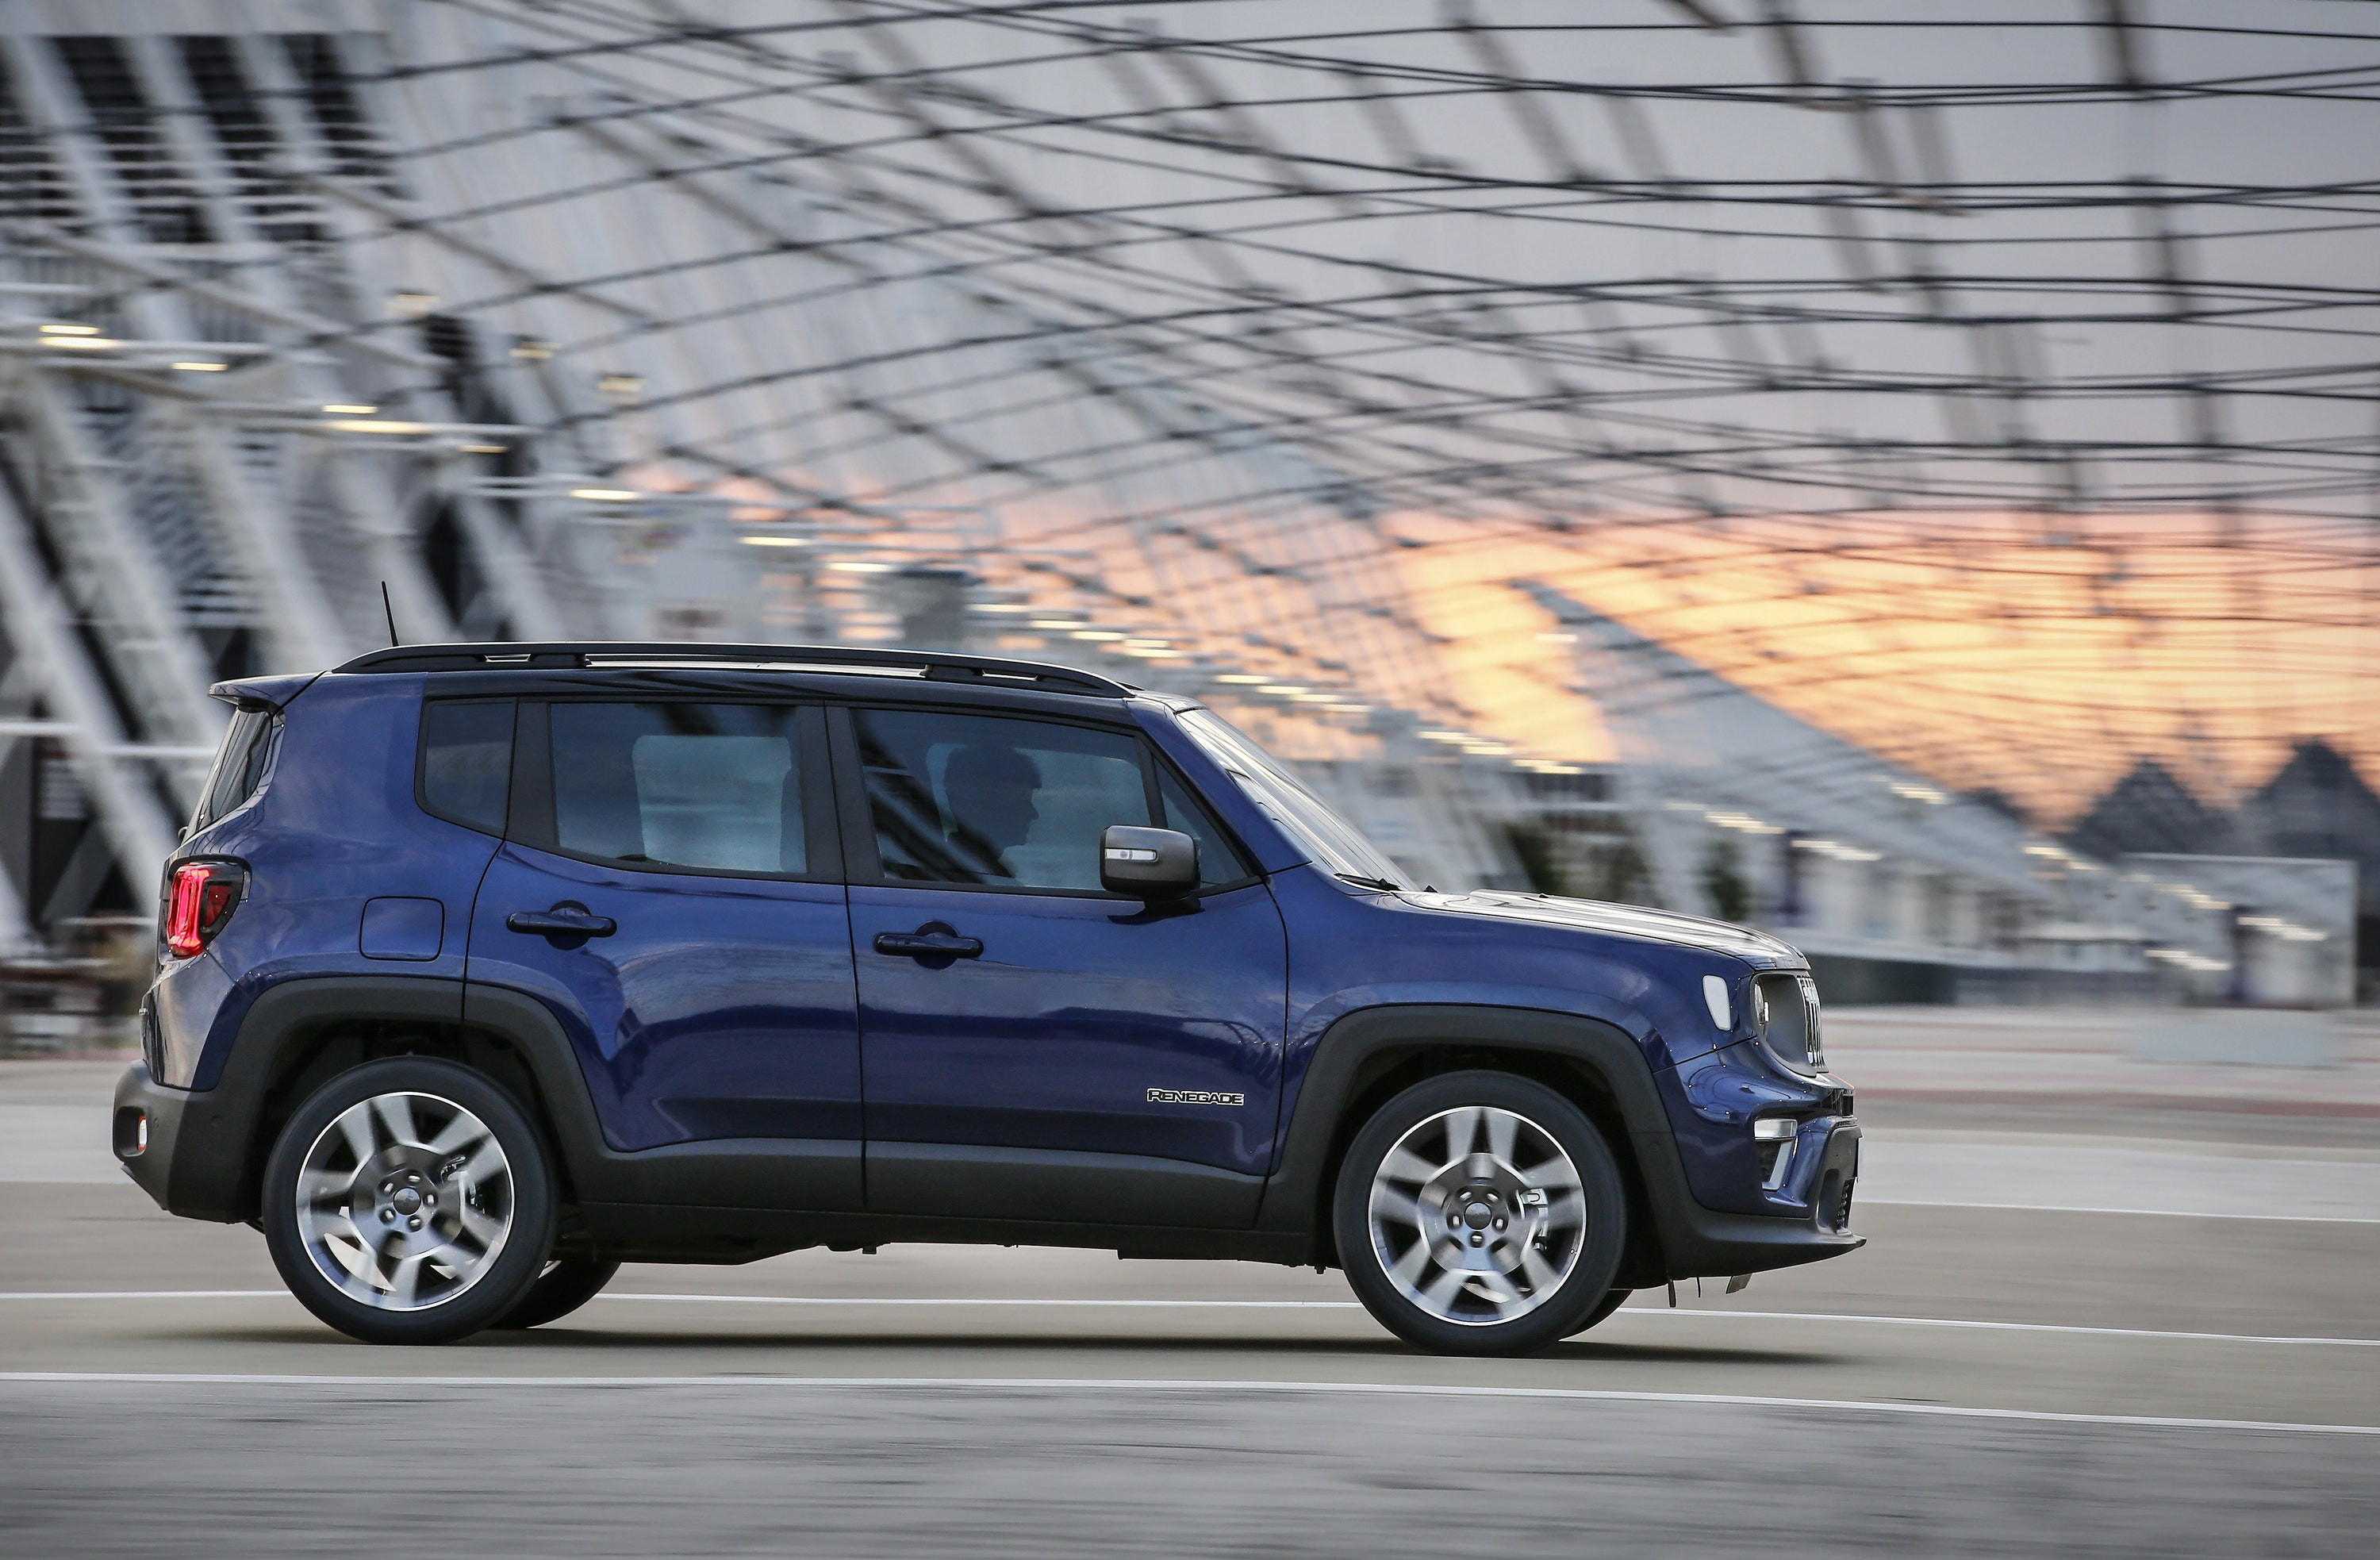 Blue Jeep Renegade side on